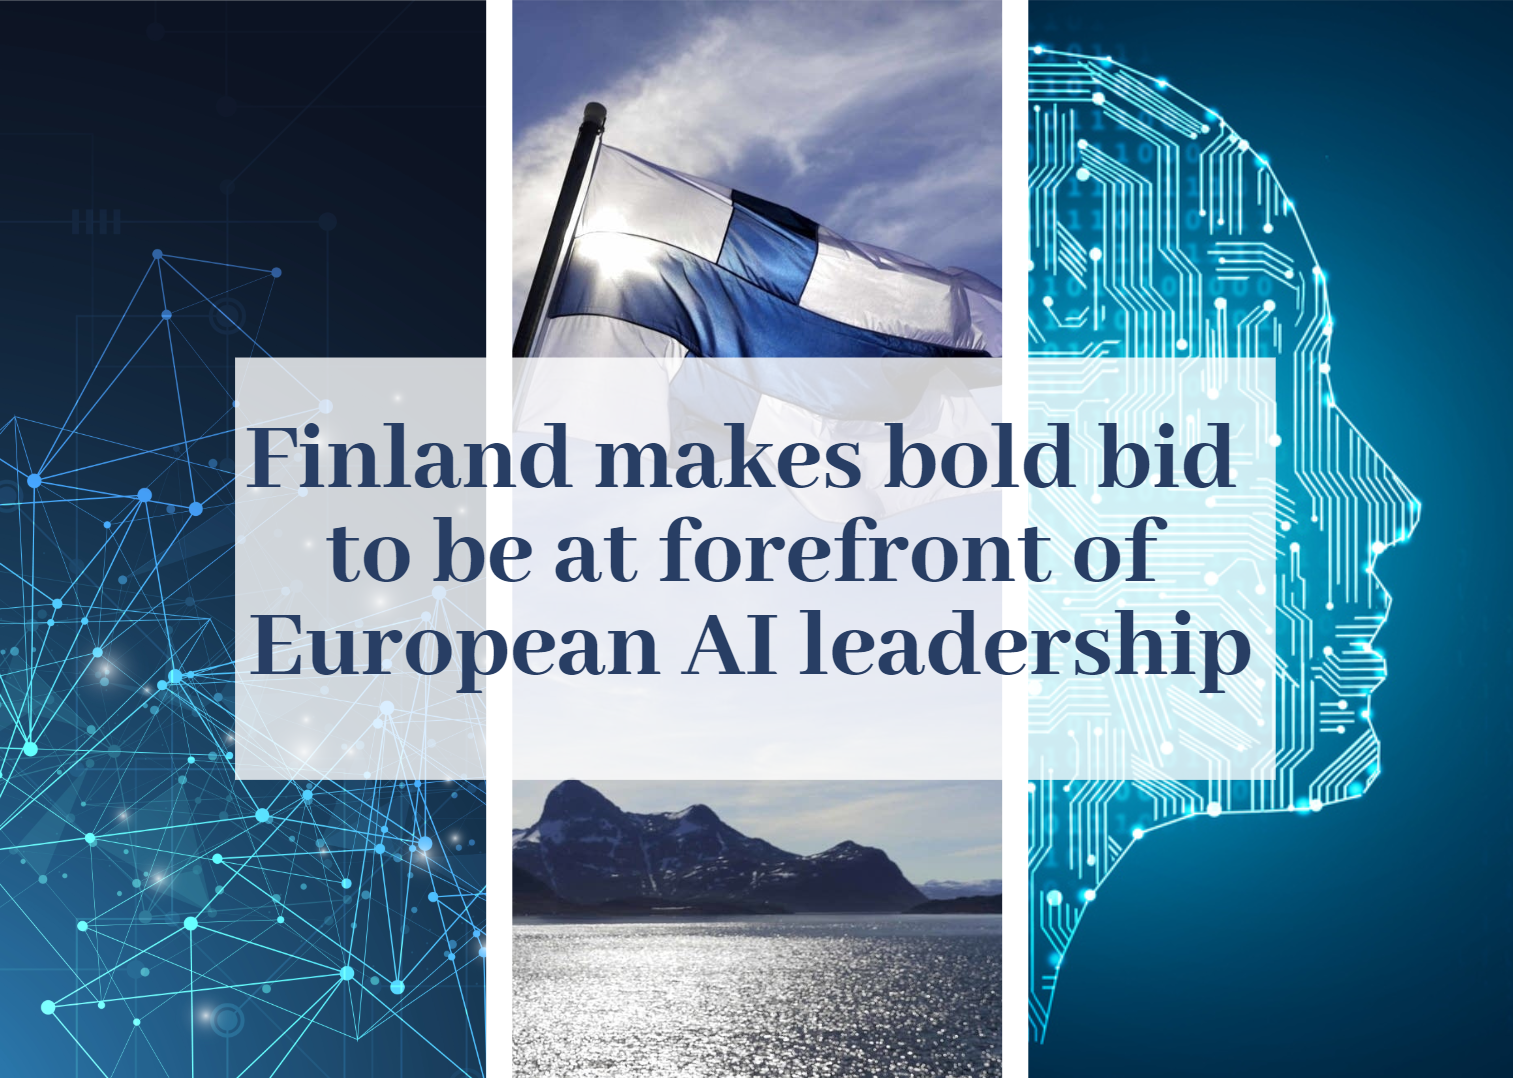 Finland makes bold bid to be at forefront of European AI leadership